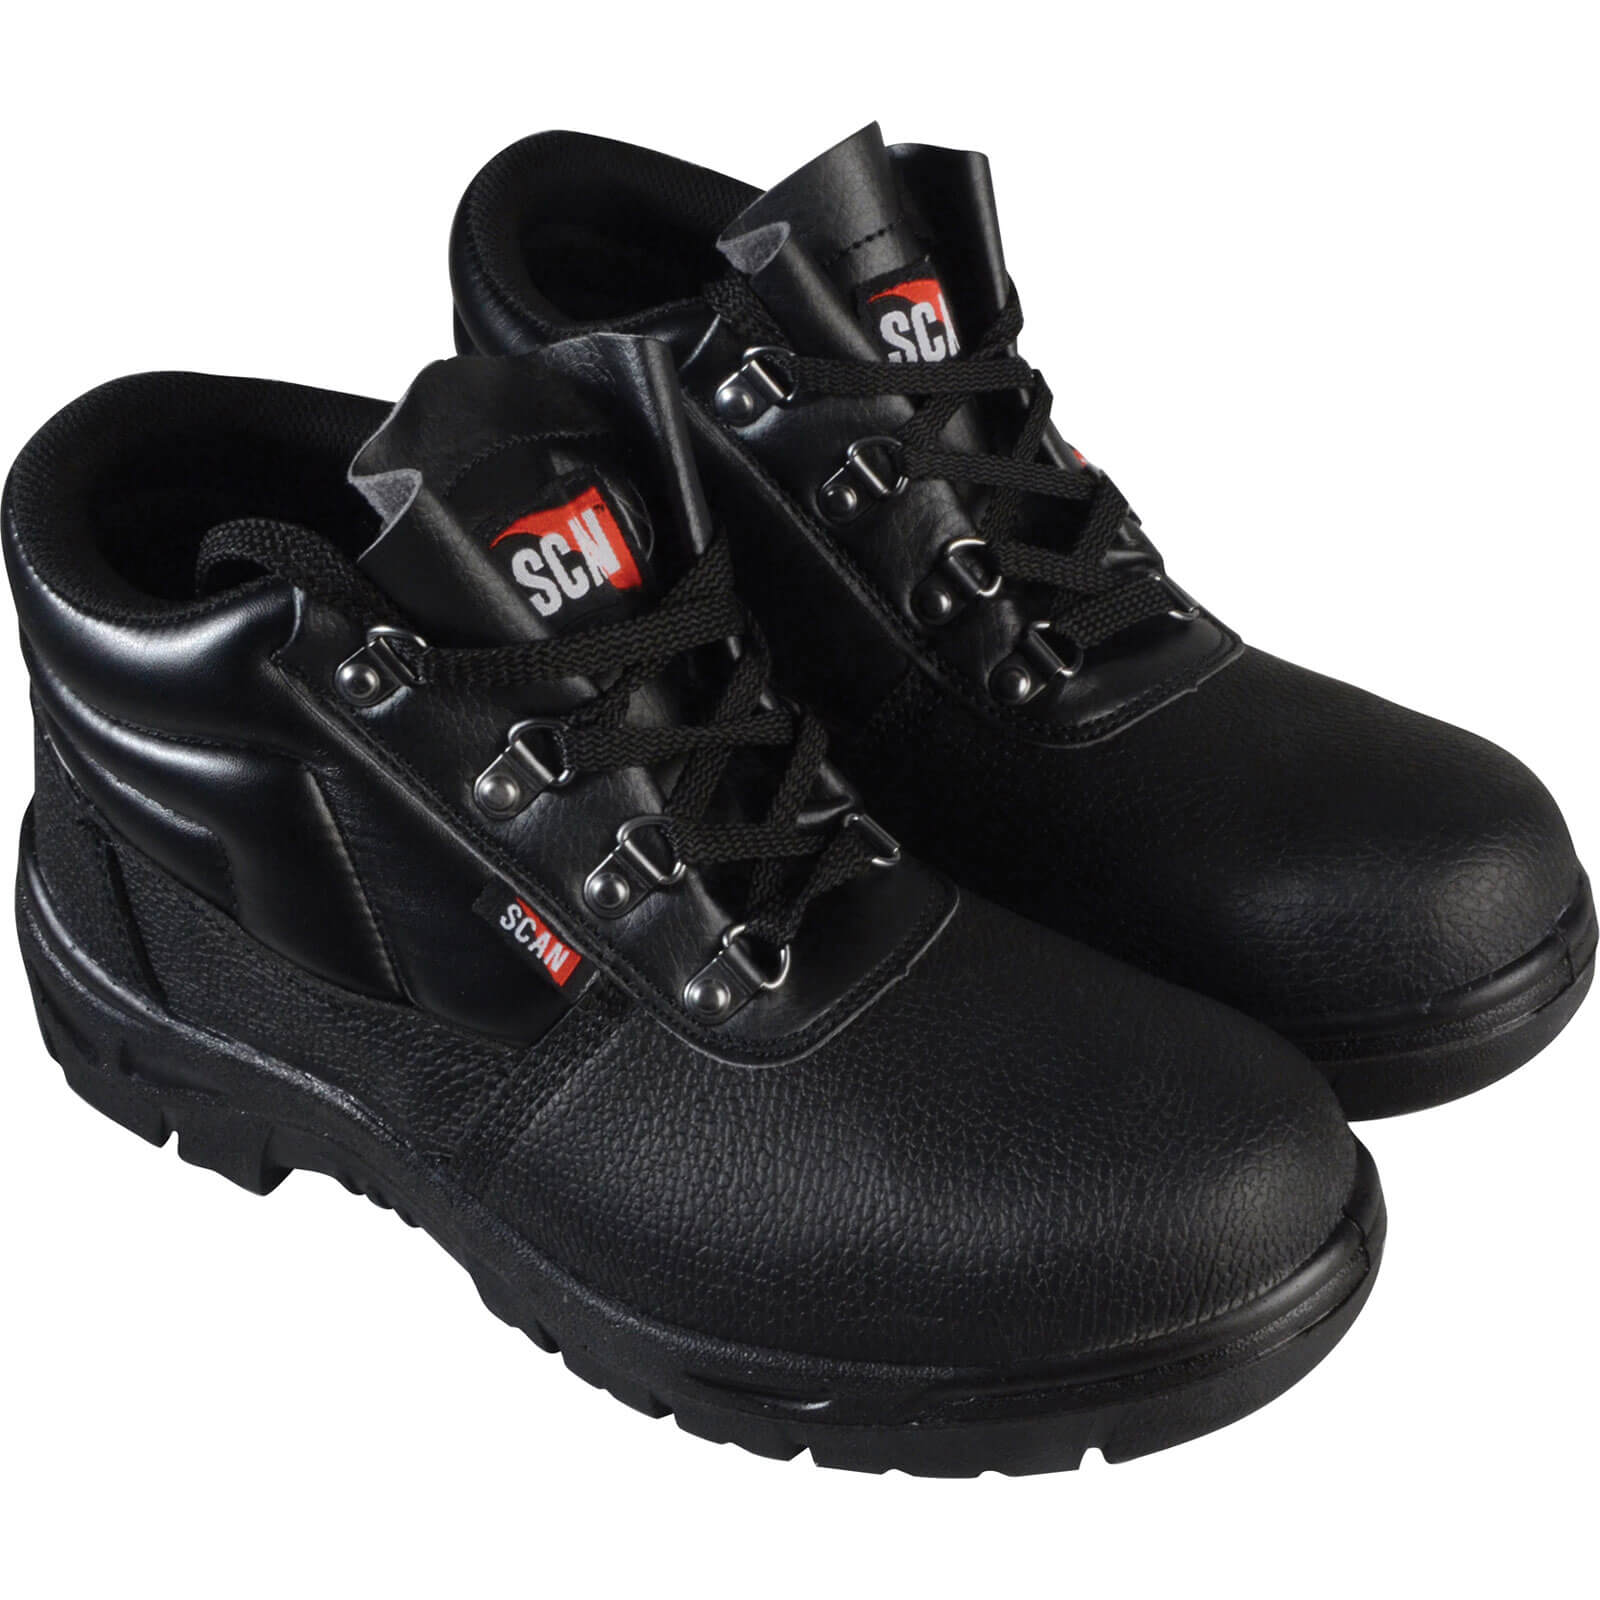 Image of Scan Mens Dual Density Chukka Safety Boots Black Size 10